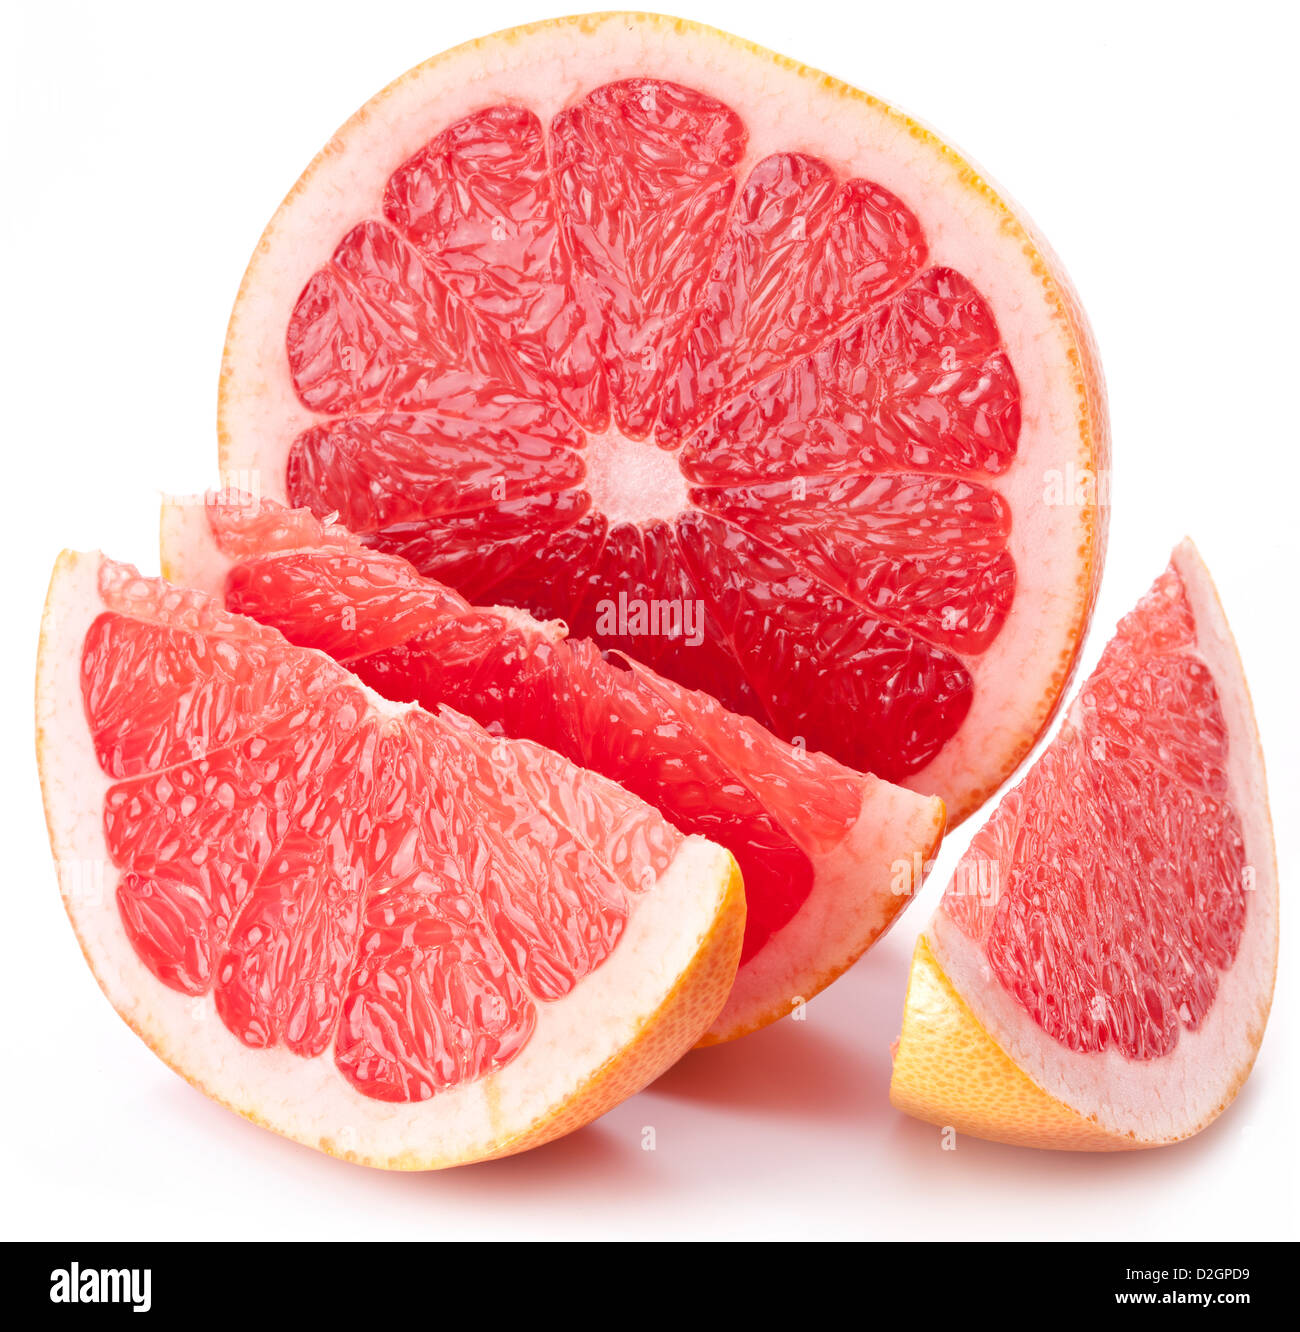 Grapefruit with slices on a white background. - Stock Image